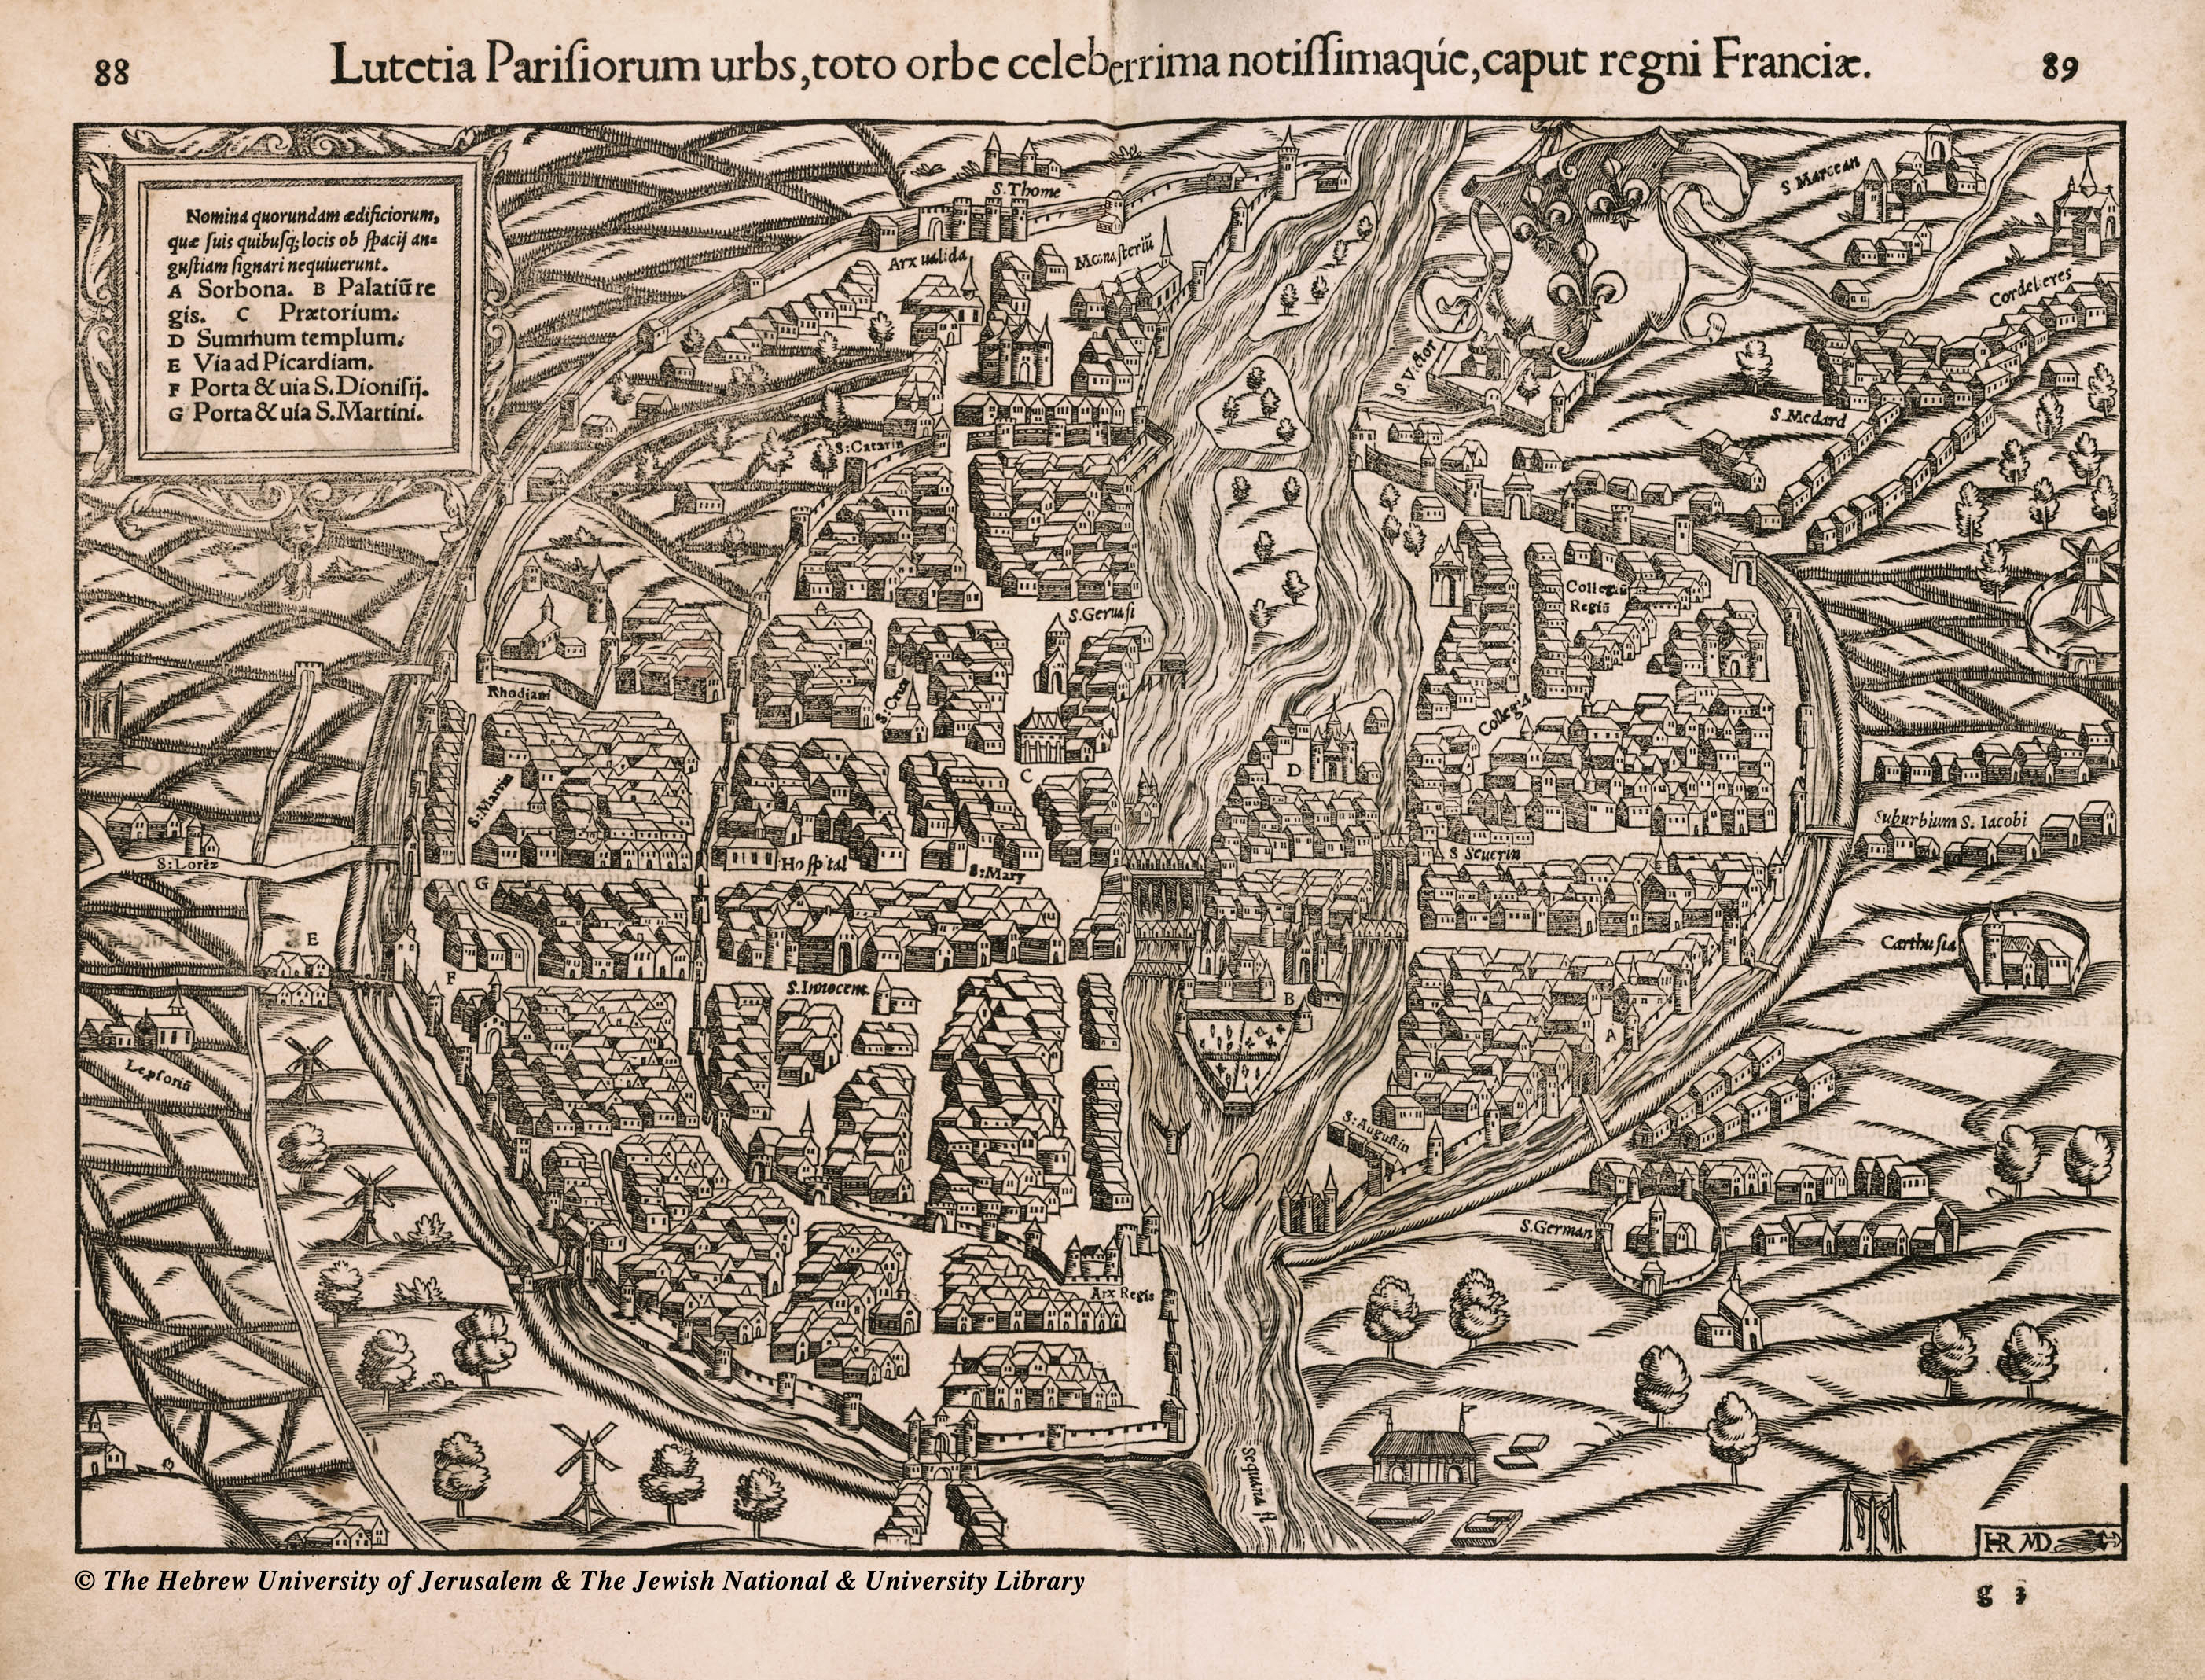 16th century black and white map of Paris, France